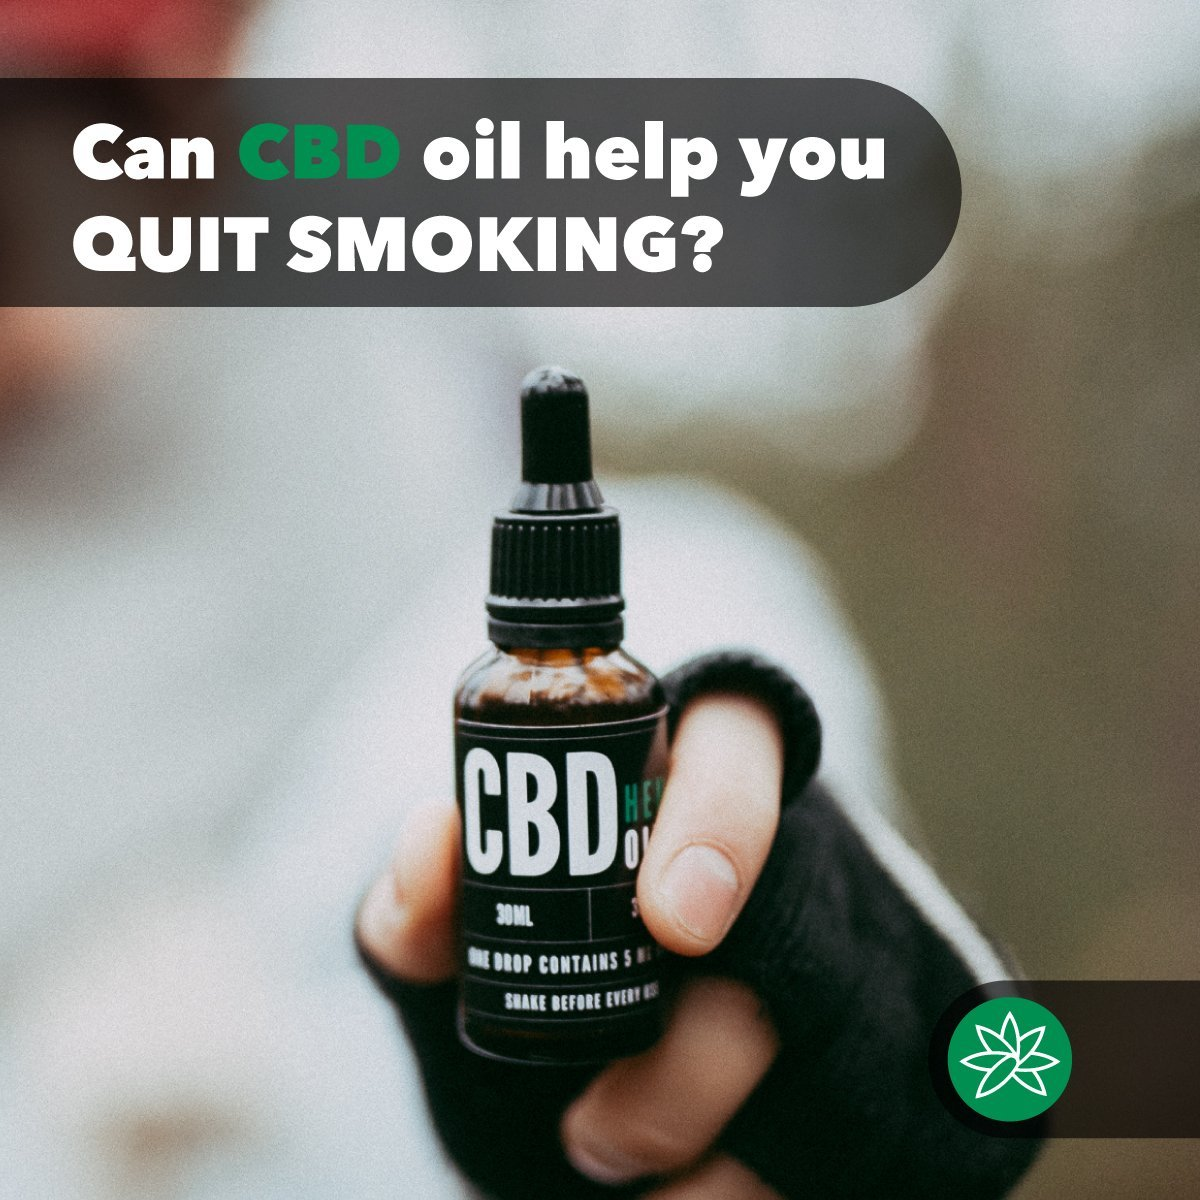 Can CBD oil help you quit smoking